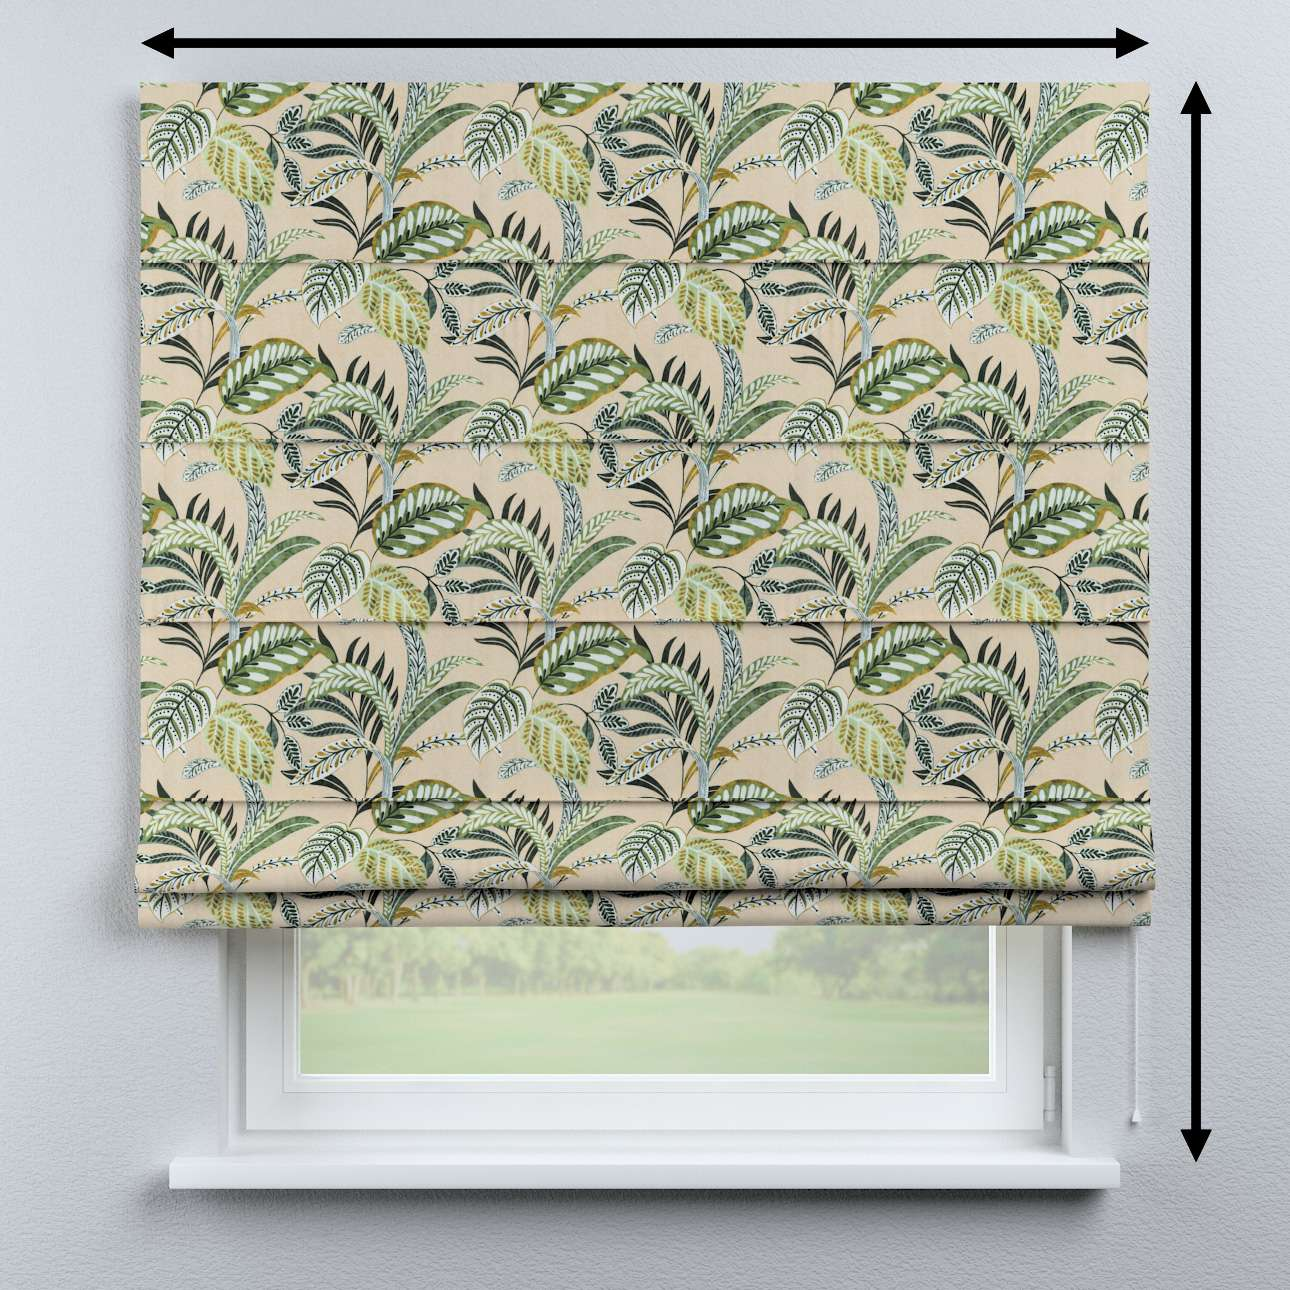 Capri roman blind in collection Tropical Island, fabric: 142-96